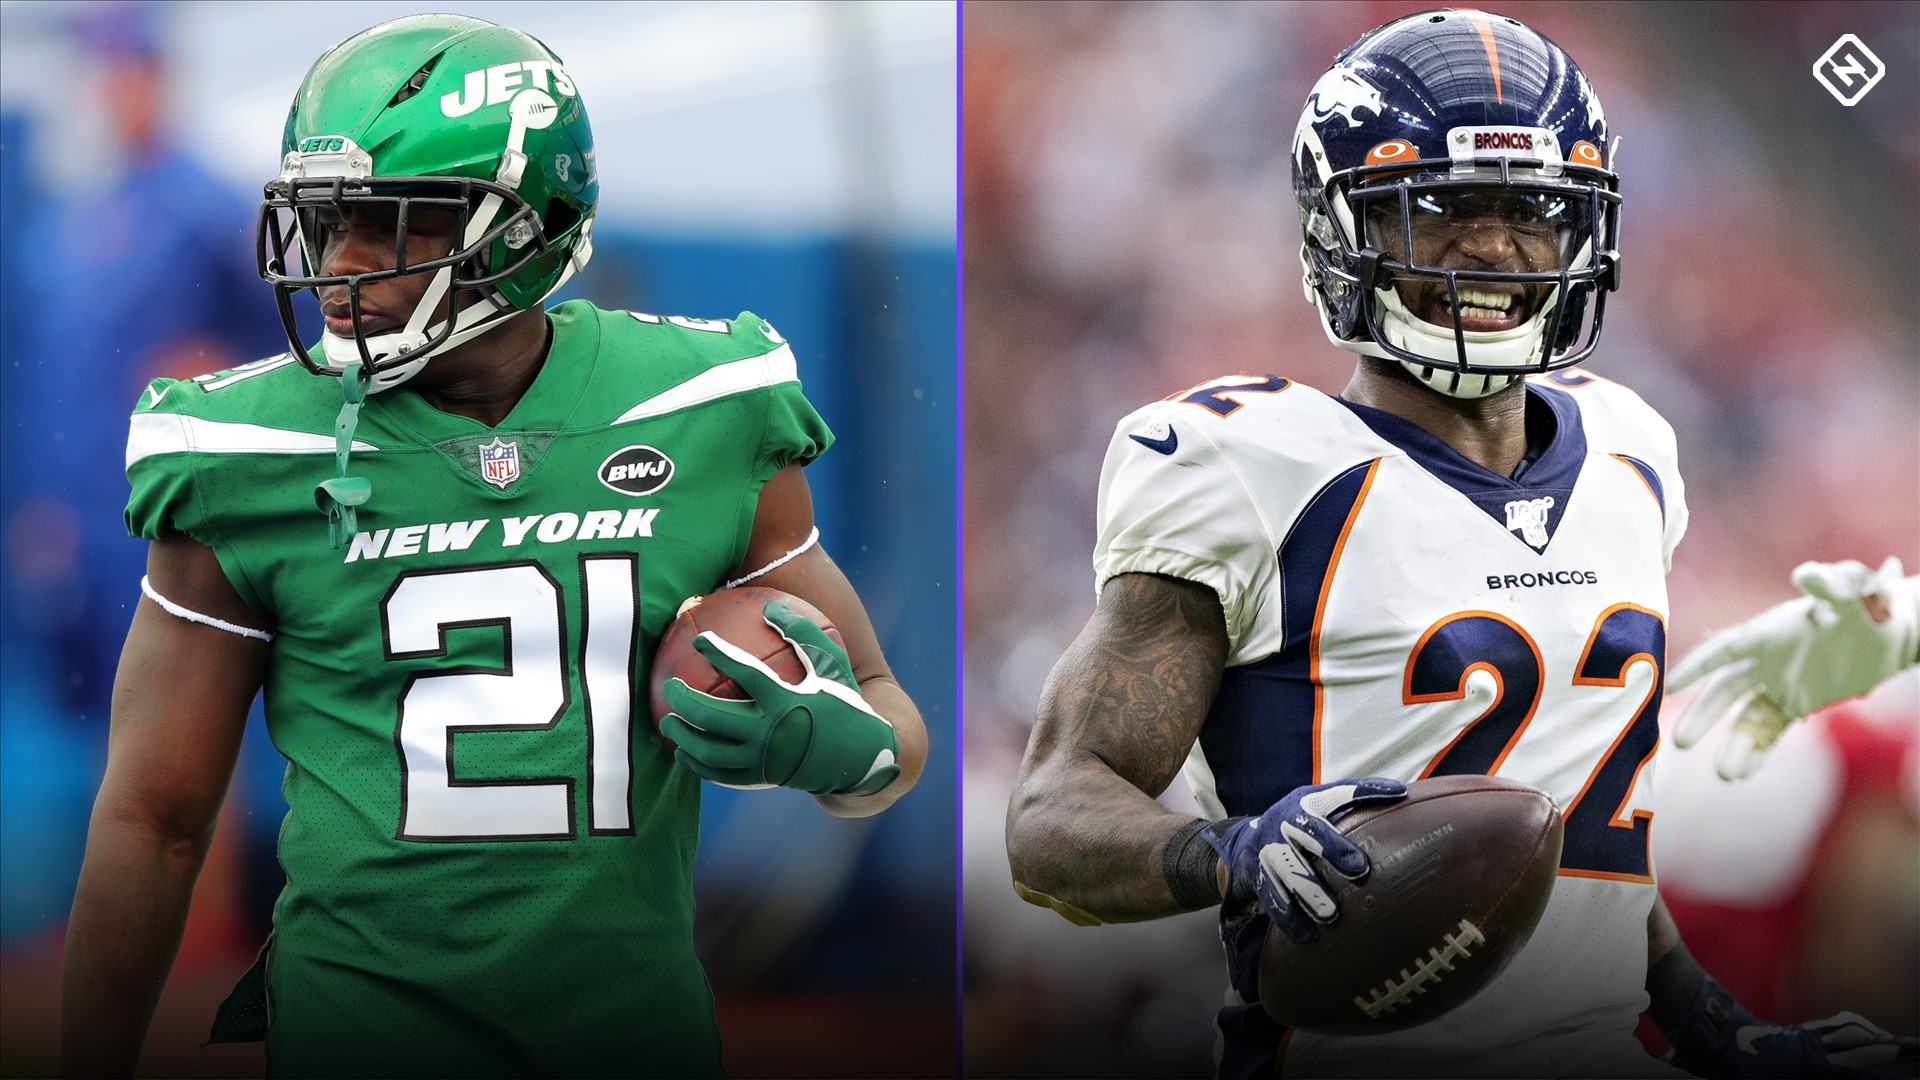 What Time Is The Nfl Game Tonight Tv Schedule Channel For Jets Vs Broncos In Week 4 Sporting News